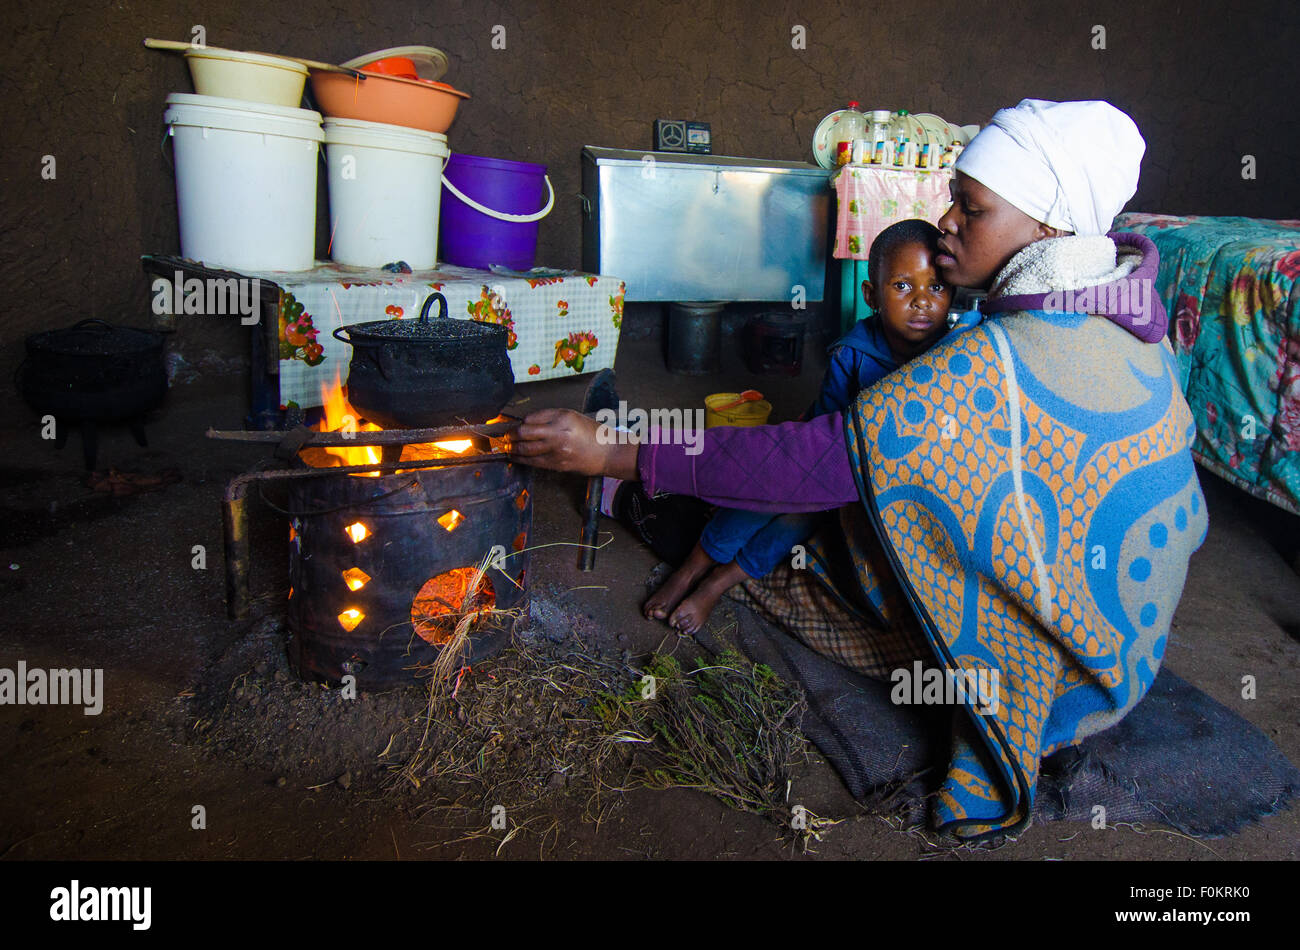 A child curiously looks on as his mother cooks a meal over a small fire pit in a rural Basotho home. - Stock Image